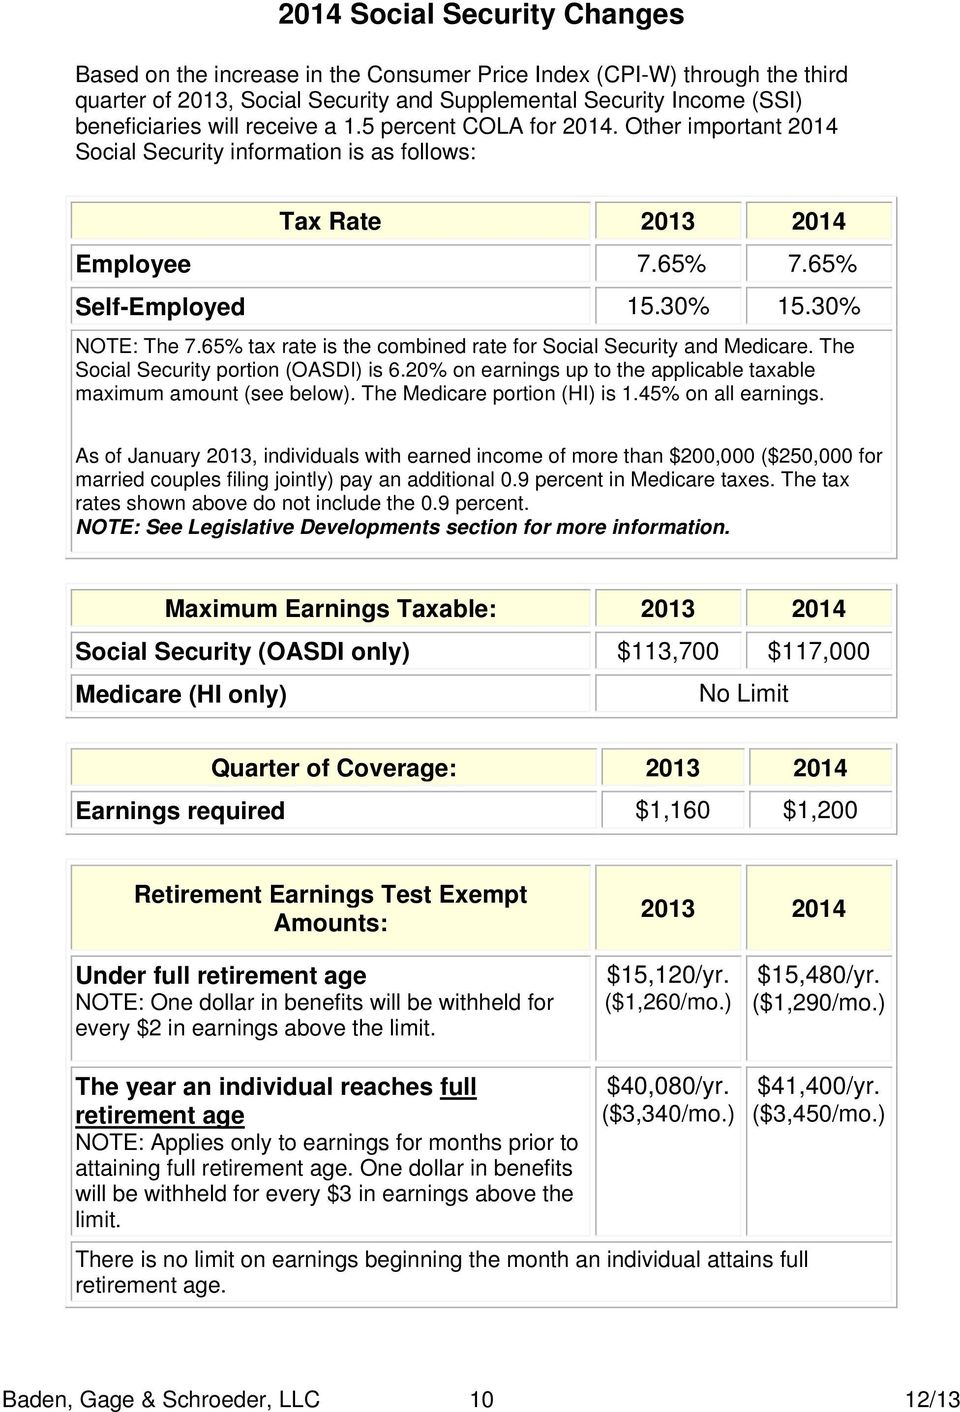 65% tax rate is the combined rate for Social Security and Medicare. The Social Security portion (OASDI) is 6.20% on earnings up to the applicable taxable maximum amount (see below).